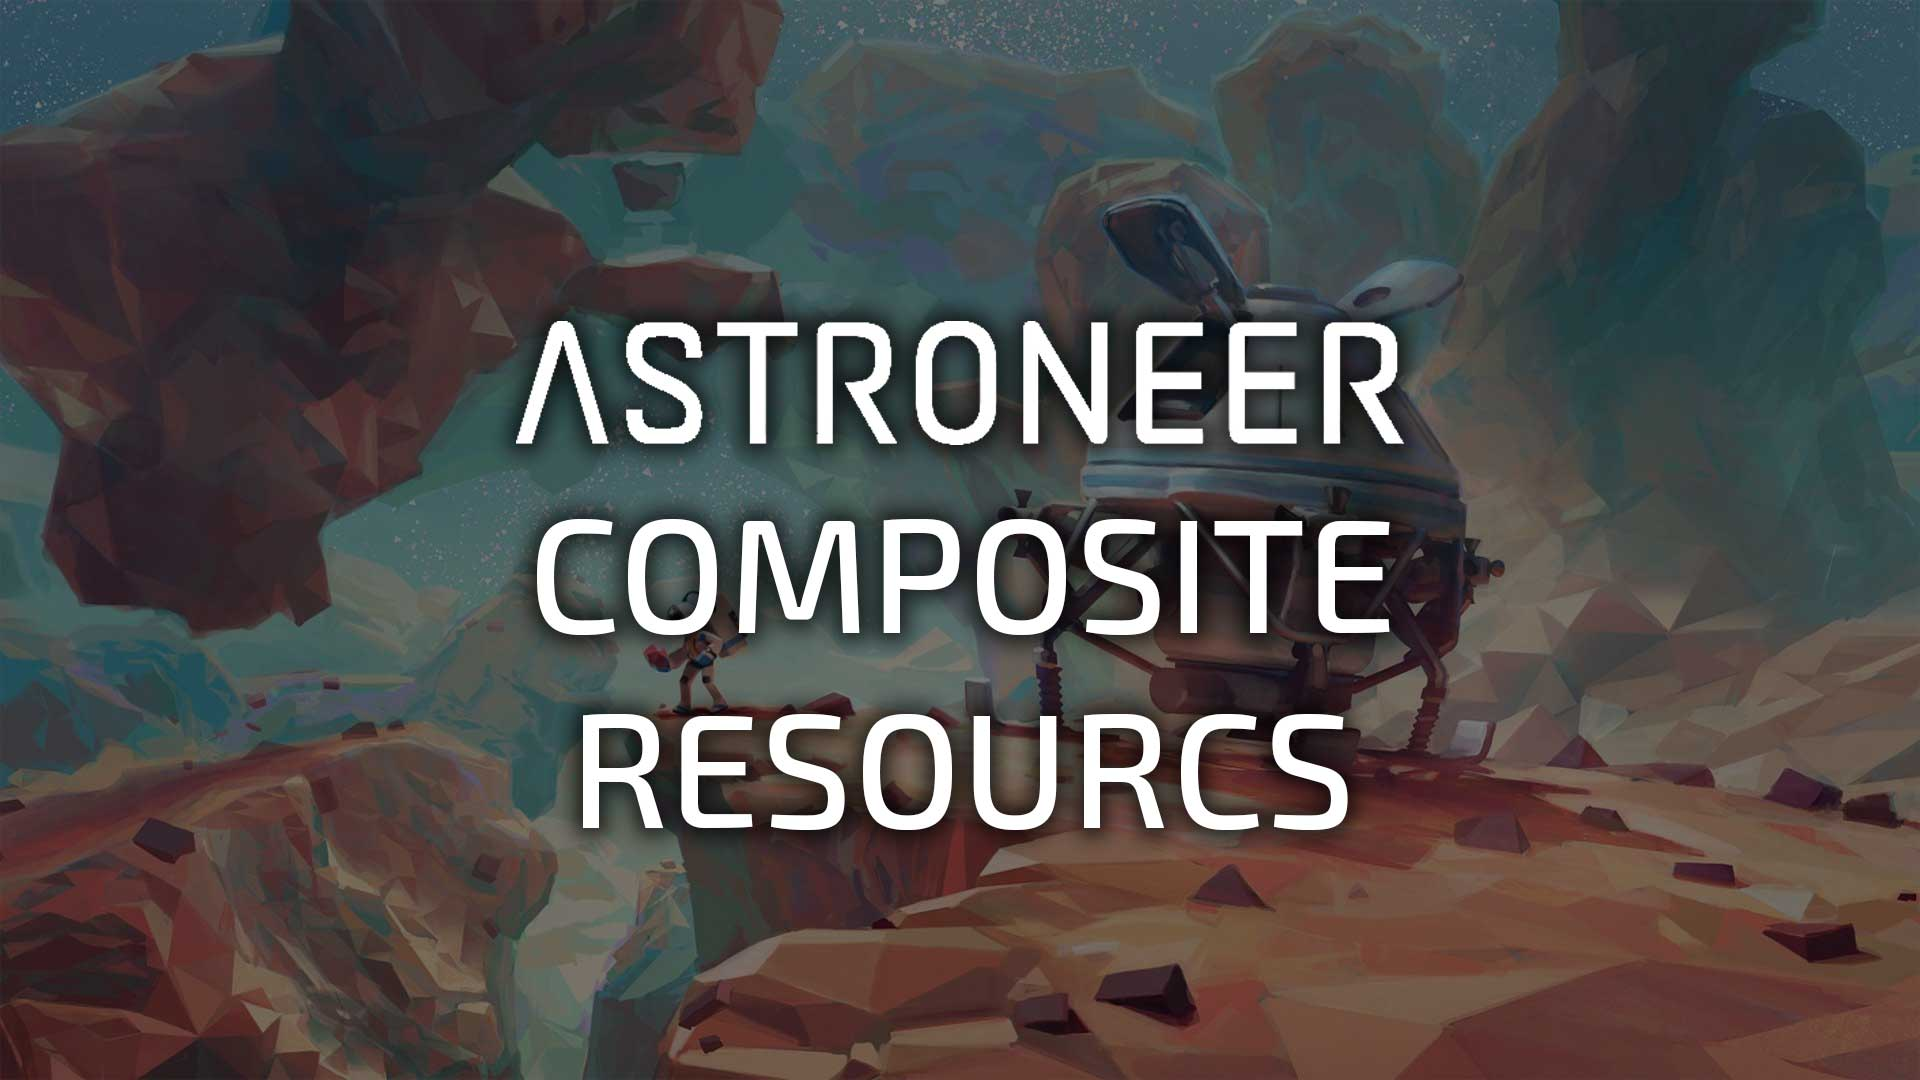 astroneer composite resources